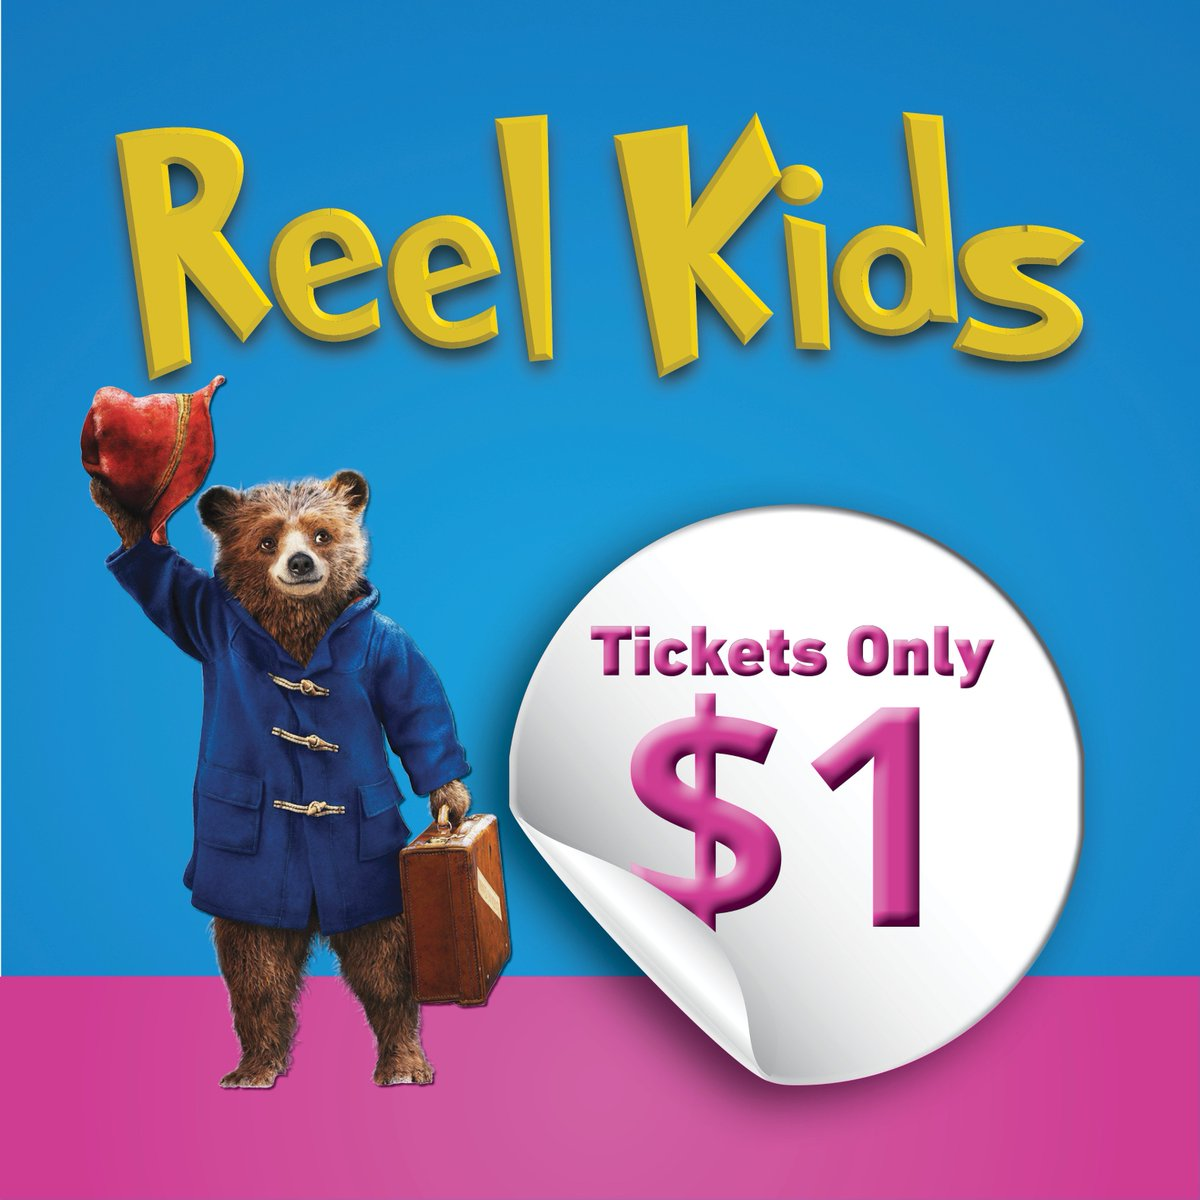 """""""Aunt Lucy said. if we are kind and polite the world will be right"""" Celebrate kindness with your family tomorrow or Thursday at 10 am with PADDINGTON for just $1 !! Tickets on our website.  #midweekmovies #children #paddington2 #summermoviespic.twitter.com/e1TyeMggbc"""